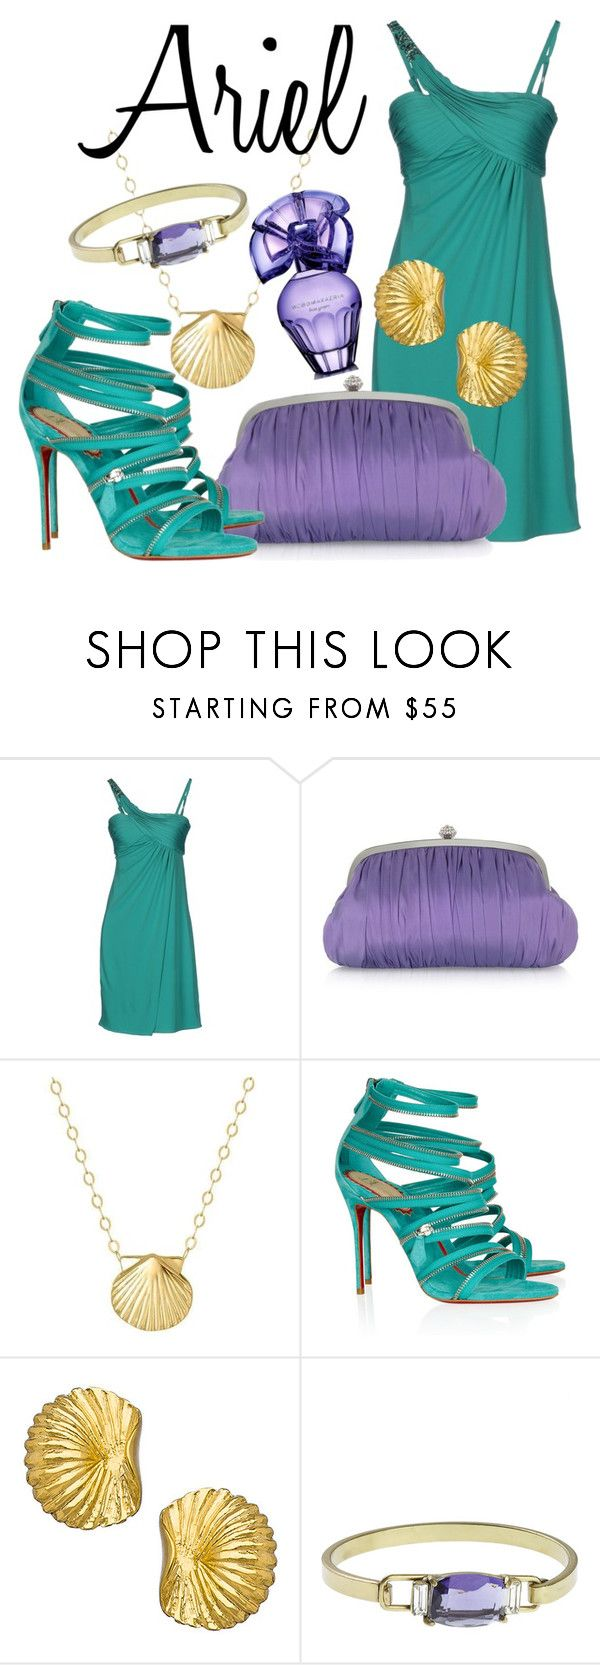 """""""Ariel"""" by dreaming-disney ❤ liked on Polyvore featuring GUESS by Marciano, Julia Cocco', Reeds Jewelers, Christian Louboutin, Boyer New York, Gerard Yosca, BCBGMAXAZRIA, purple, disney and princess"""